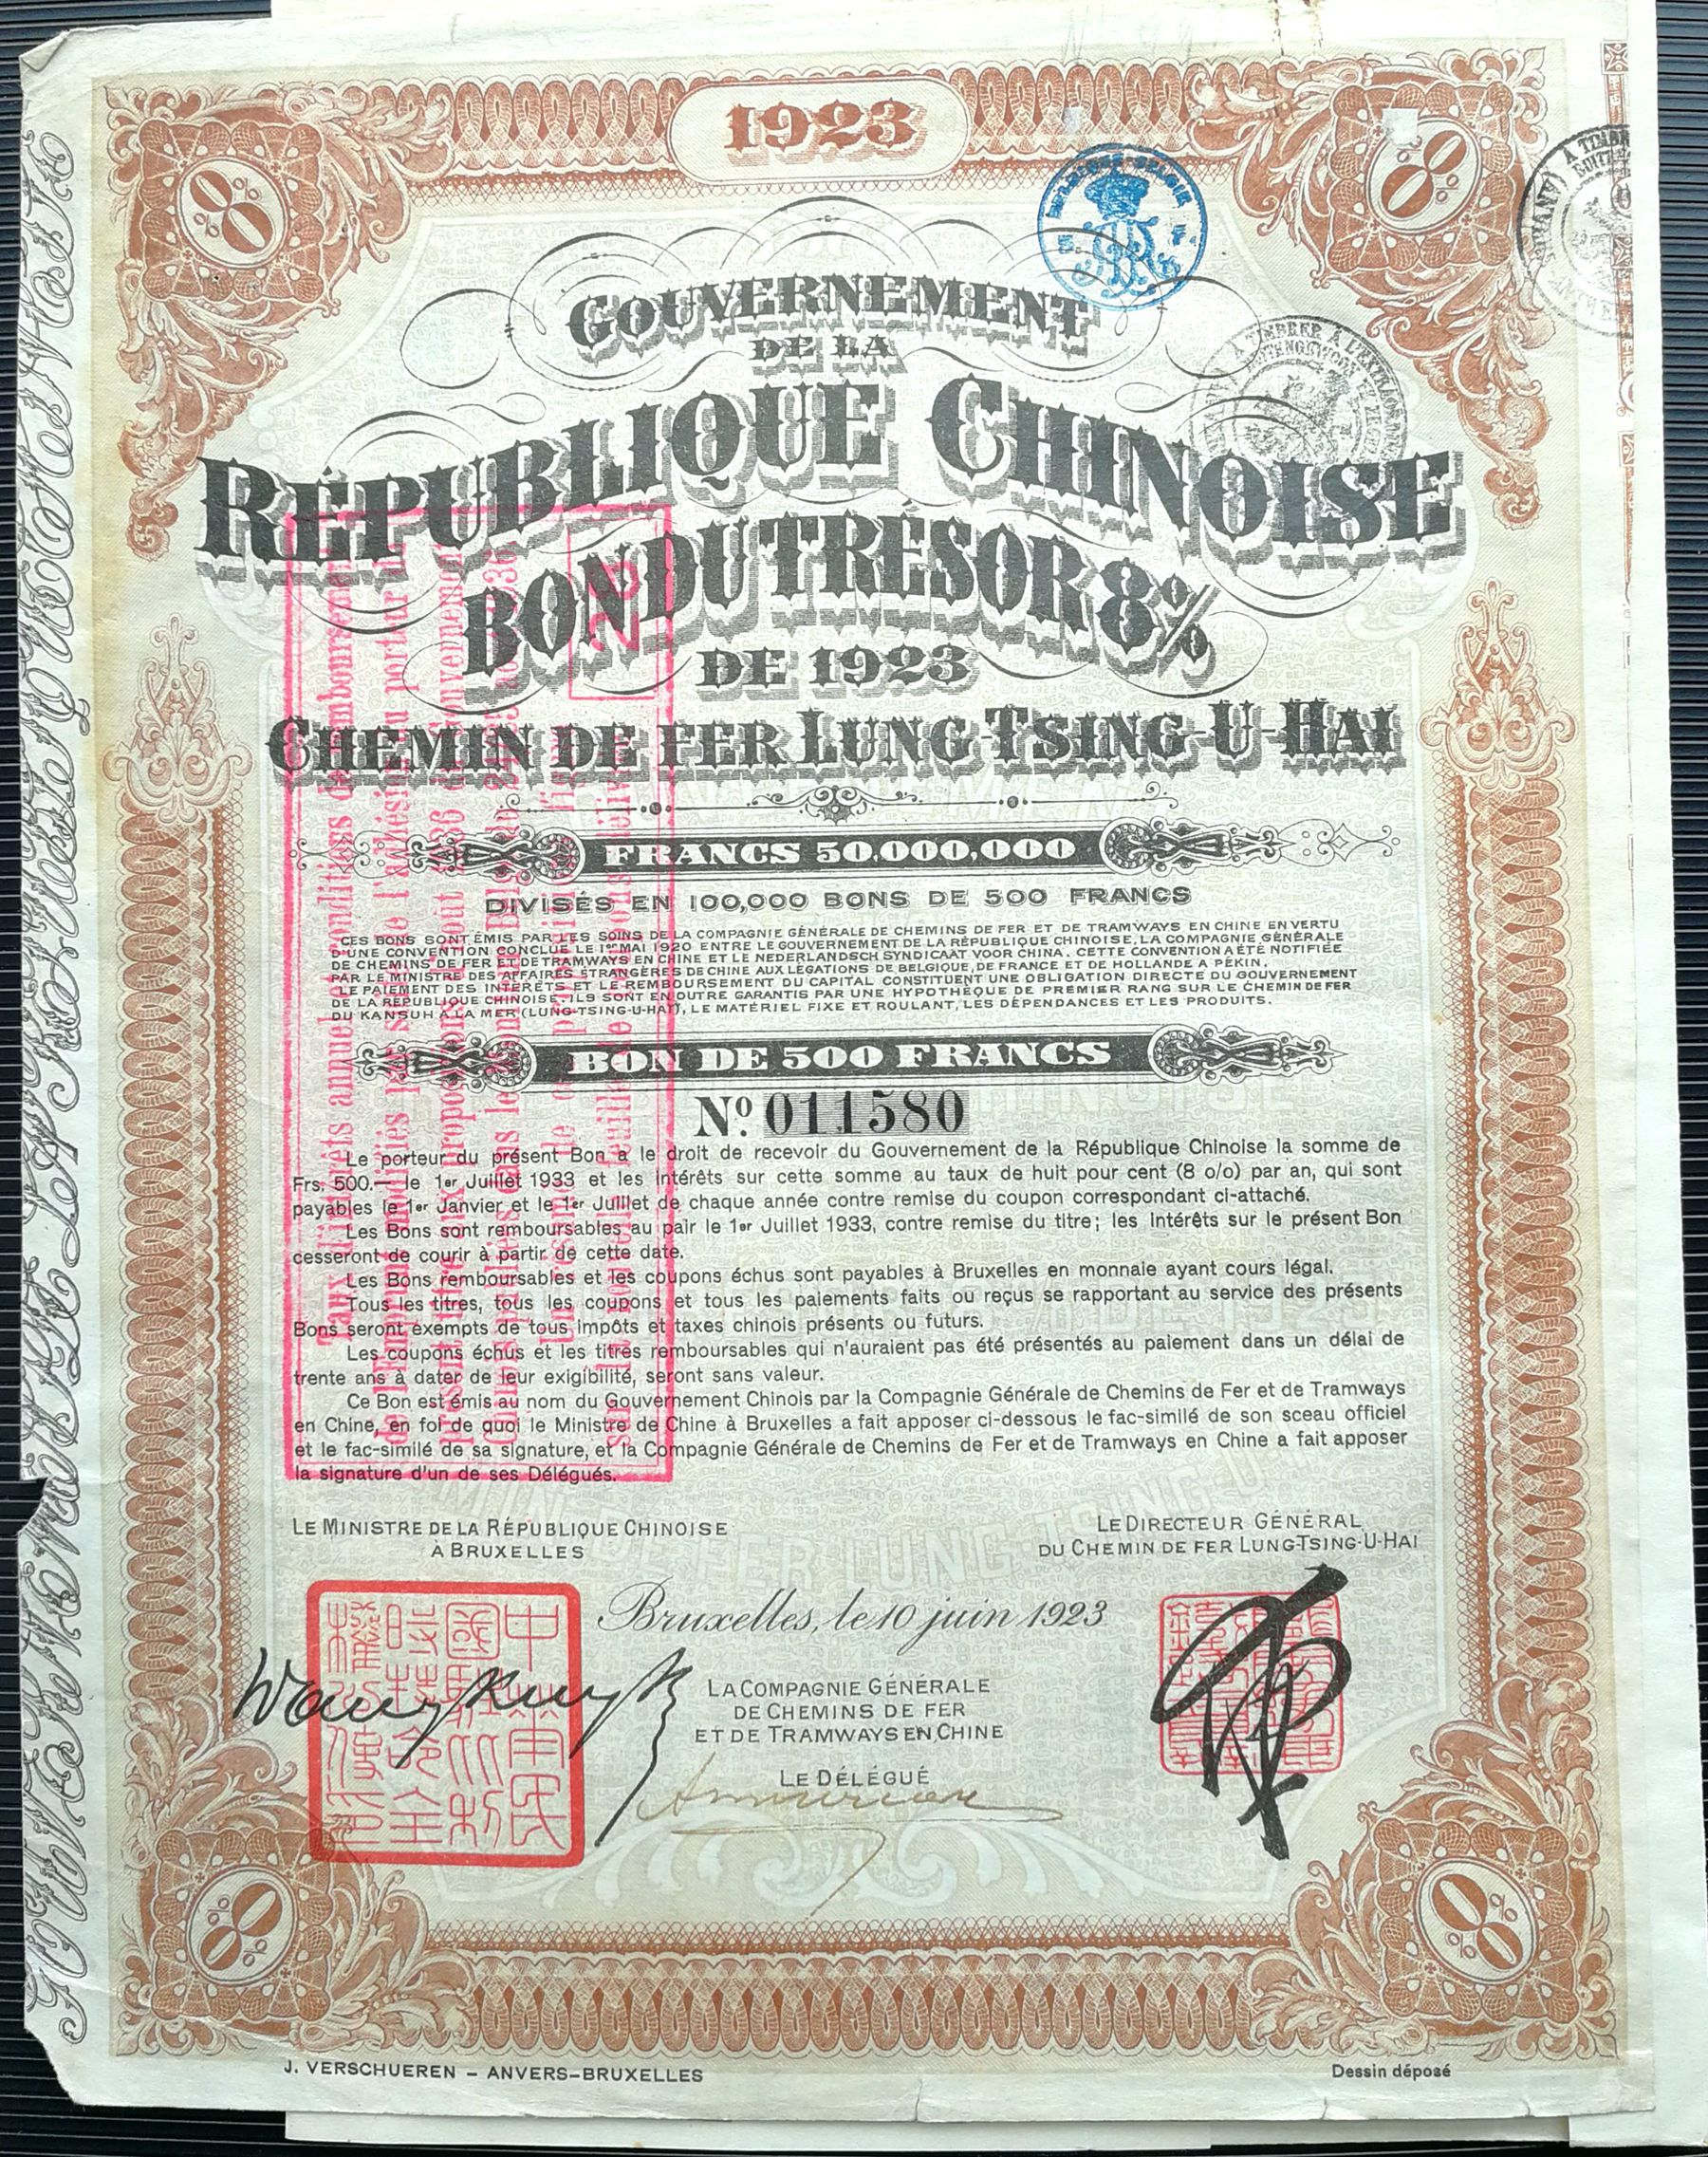 B9045, China 8% Lung-Tsing-U-Hai Railway Bond, 500 Frances Loan 1923